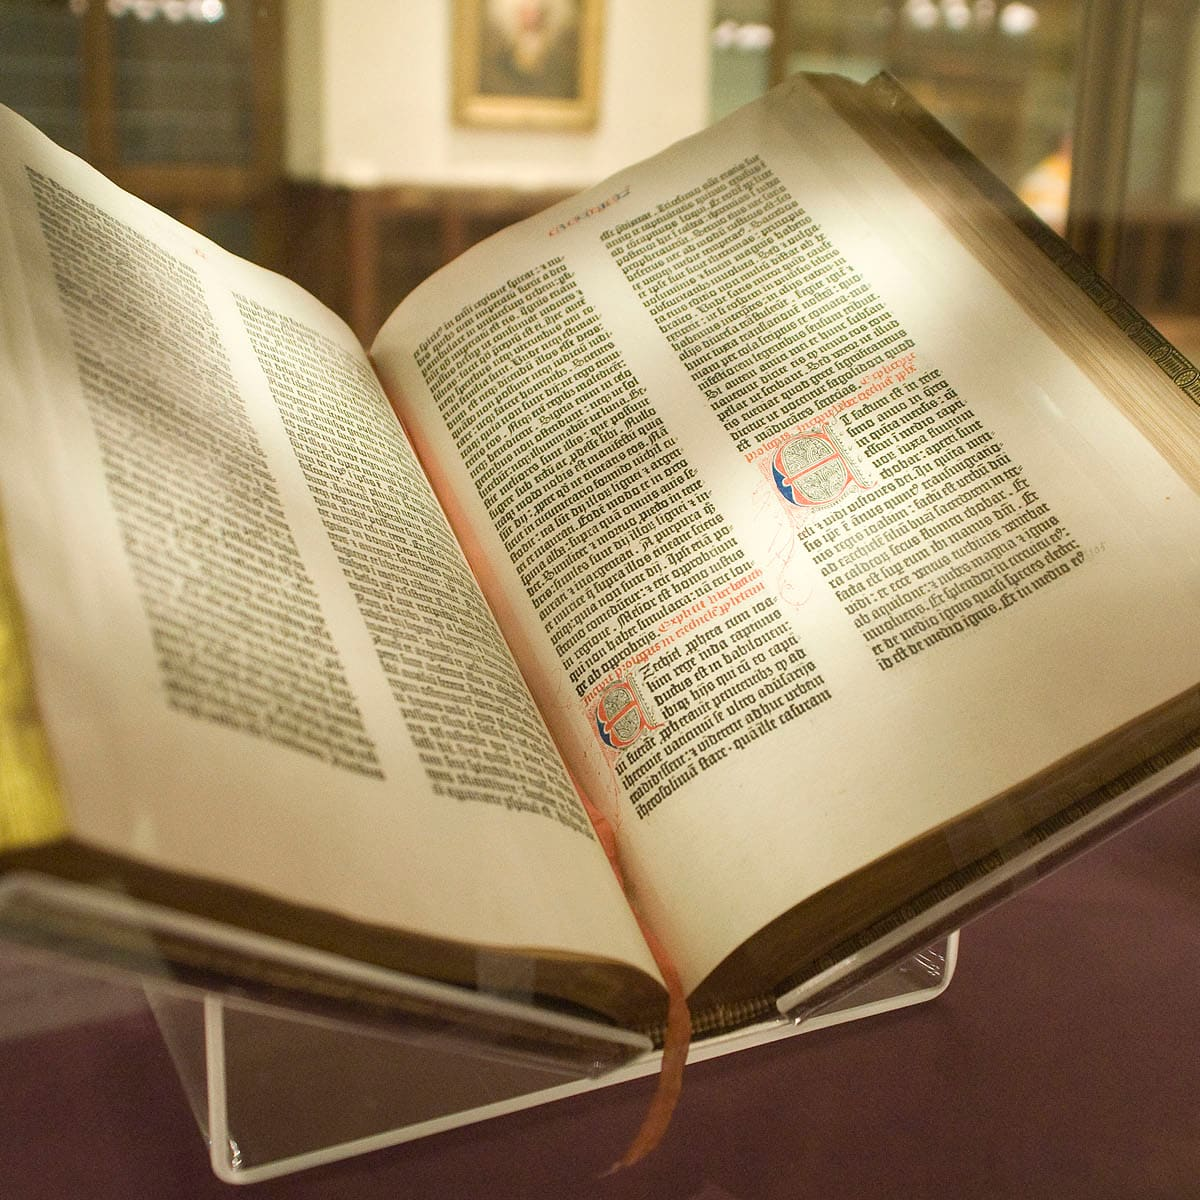 https://www.history.com/news/7-things-you-may-not-know-about-the-gutenberg-bible